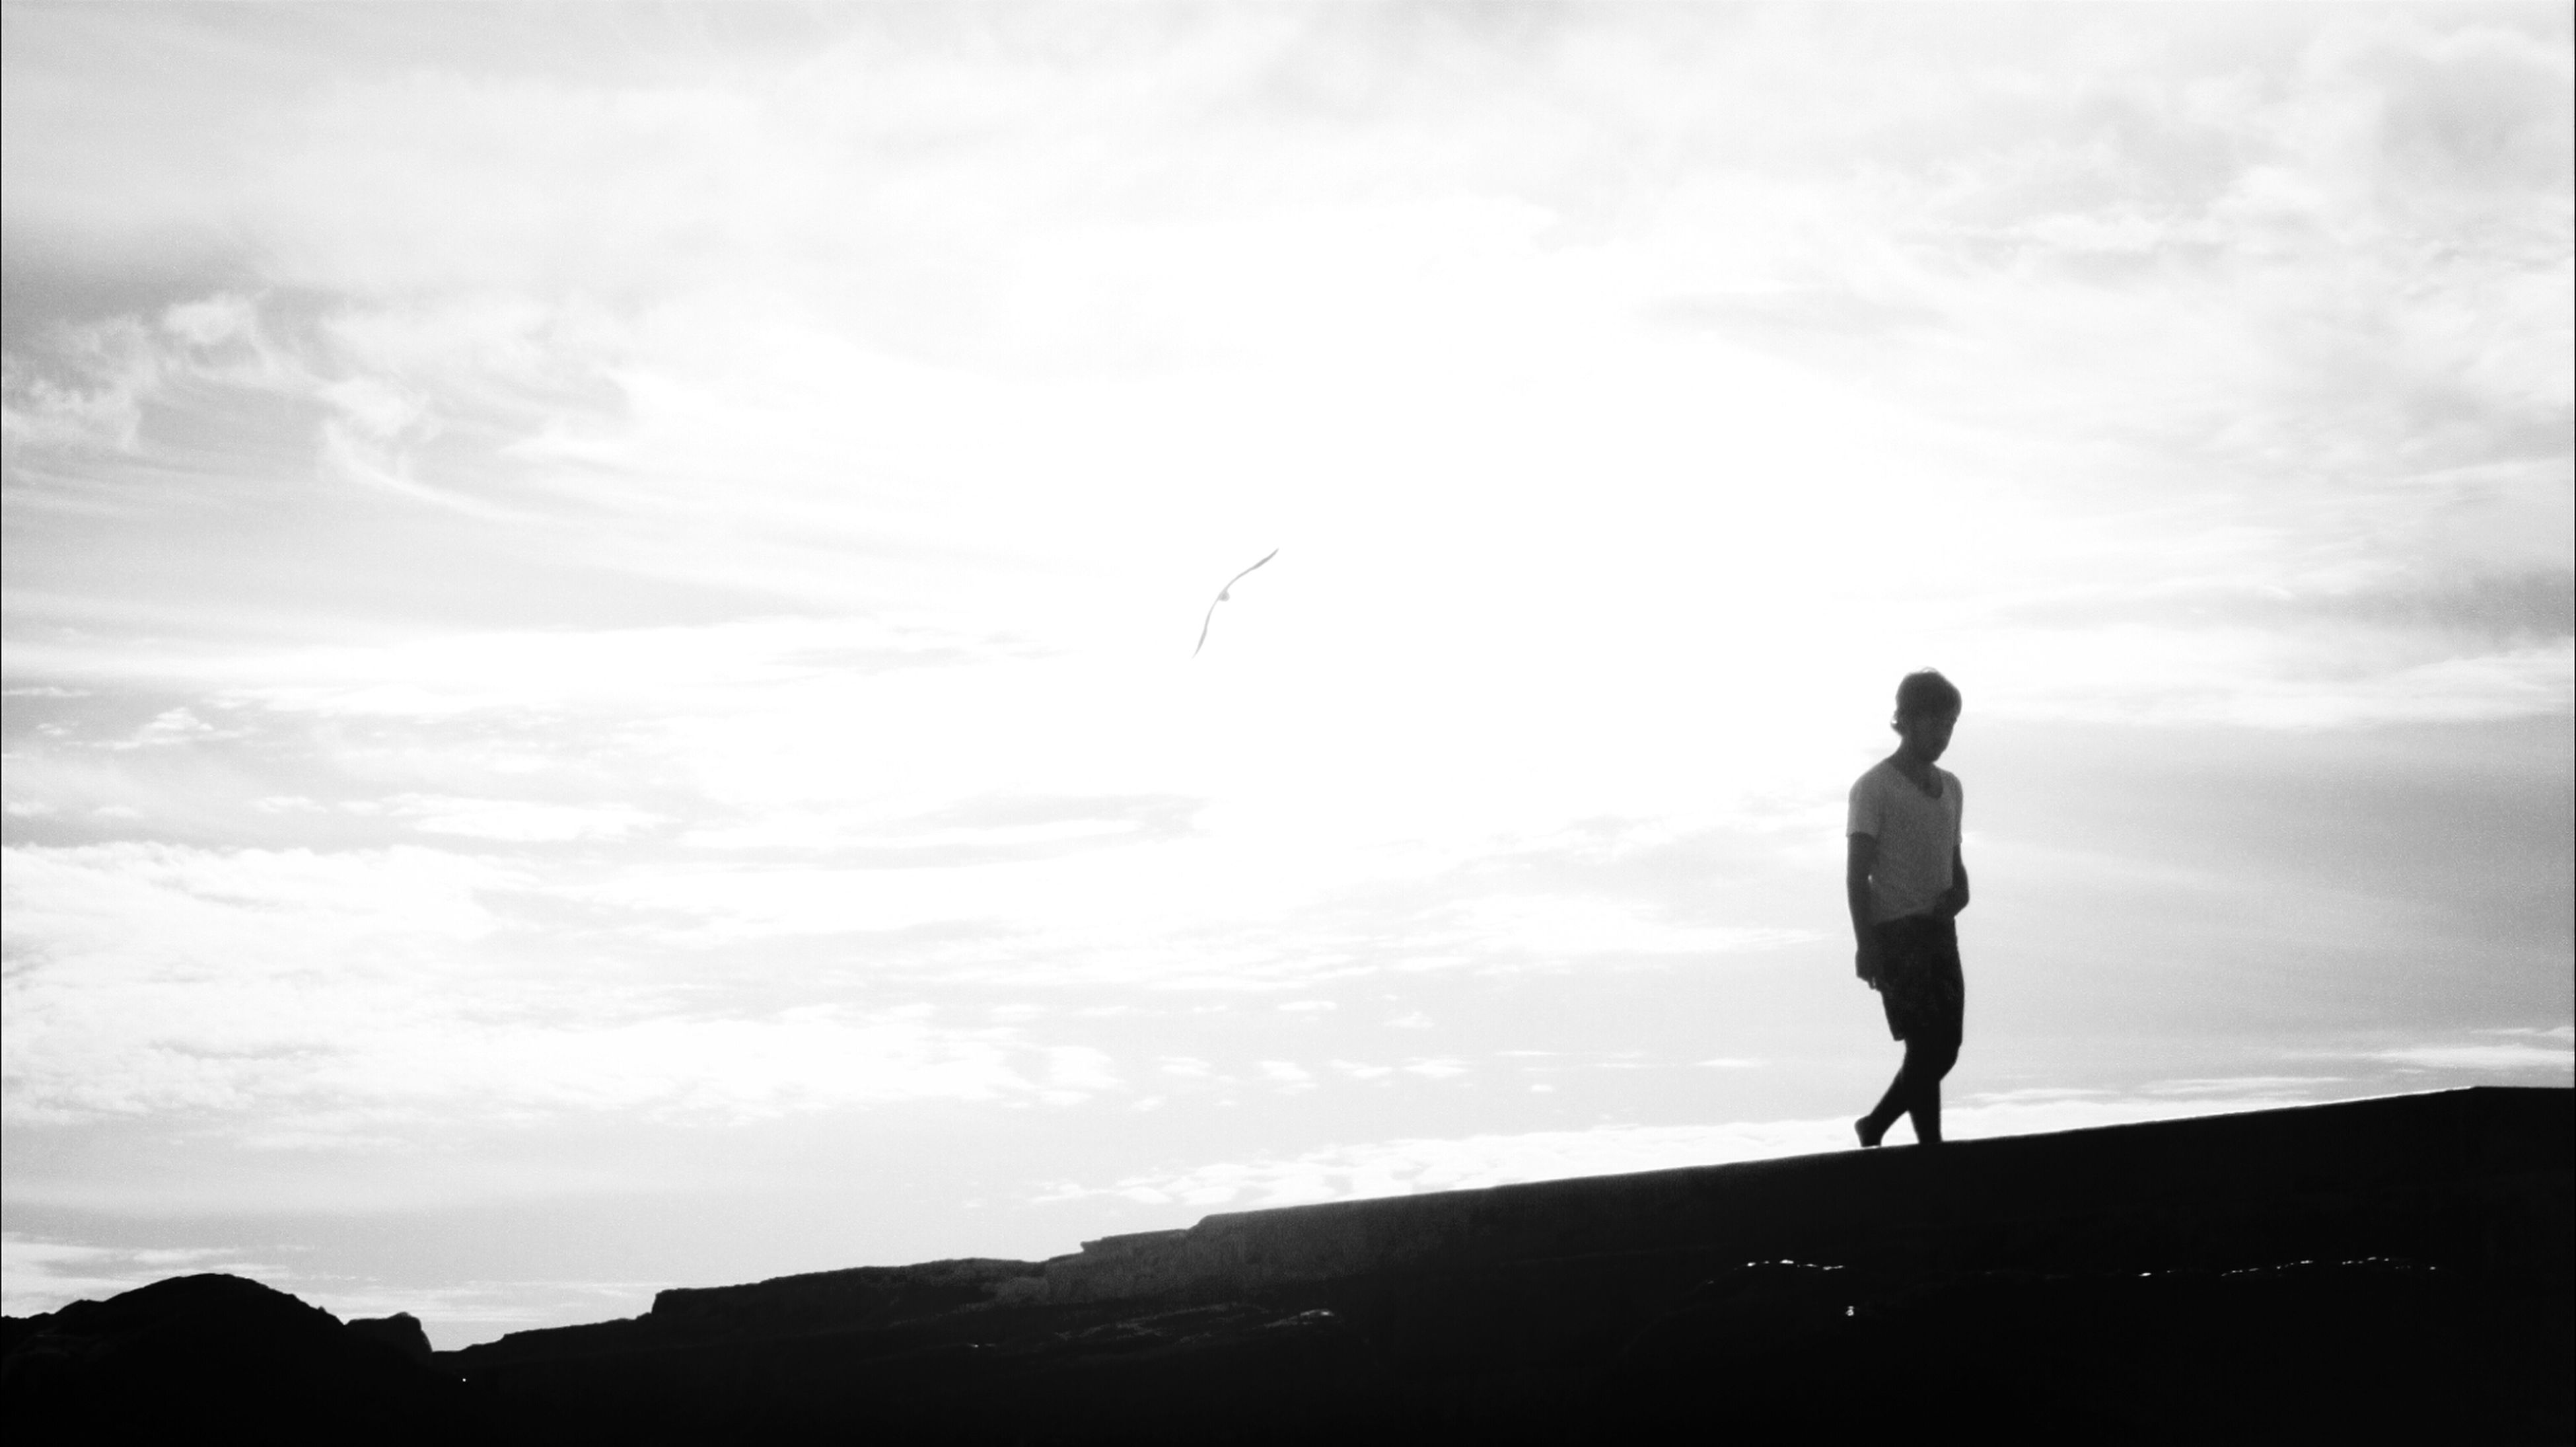 silhouette, sky, full length, men, lifestyles, standing, leisure activity, cloud - sky, rear view, tranquility, nature, tranquil scene, cloud, beauty in nature, scenics, walking, low angle view, person